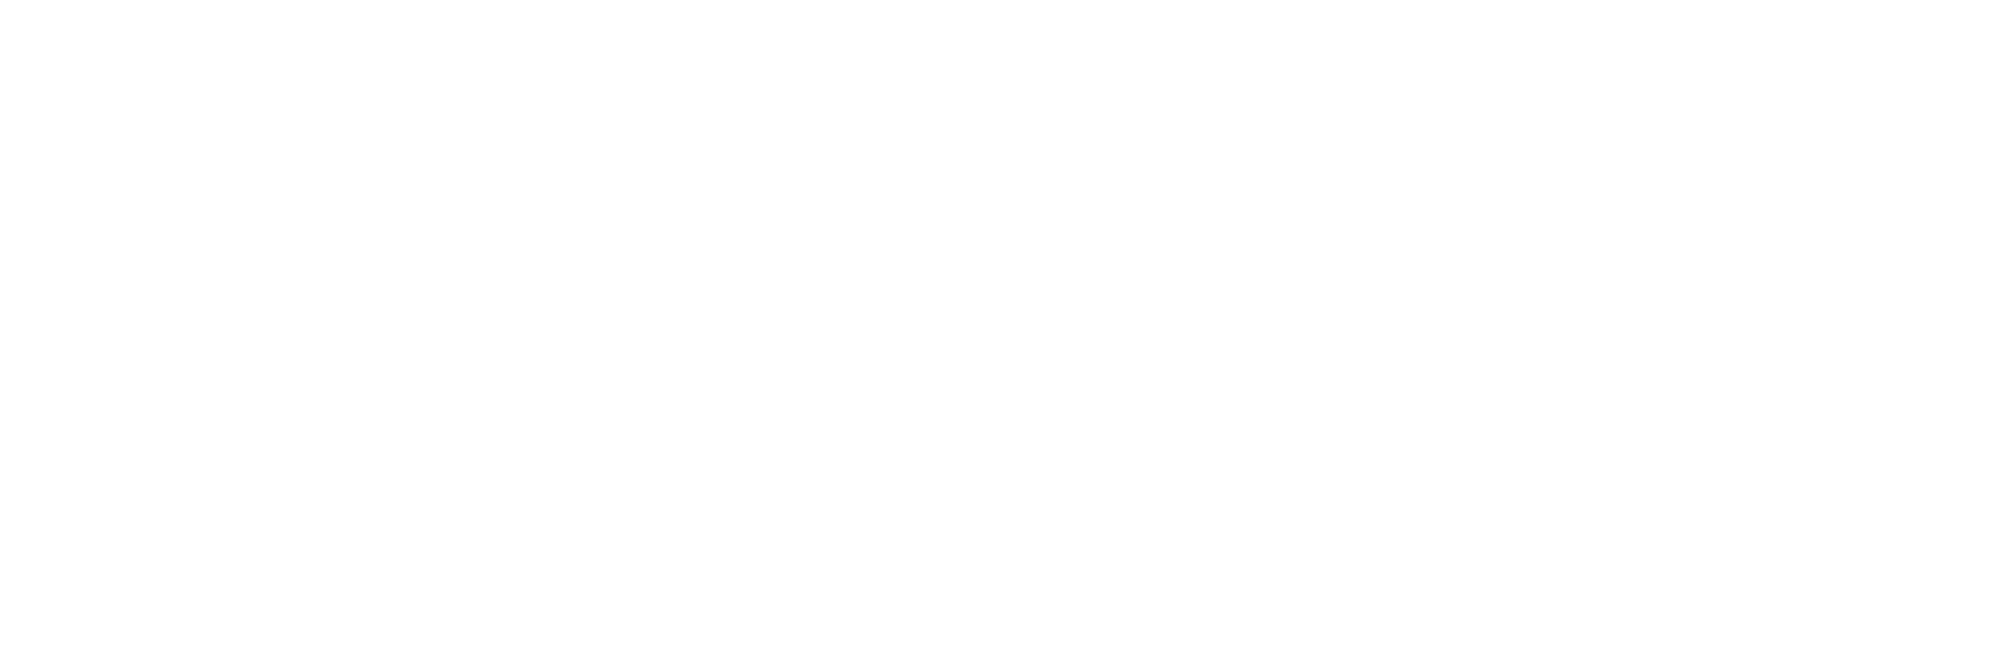 The Blind Guy With a Good Eye